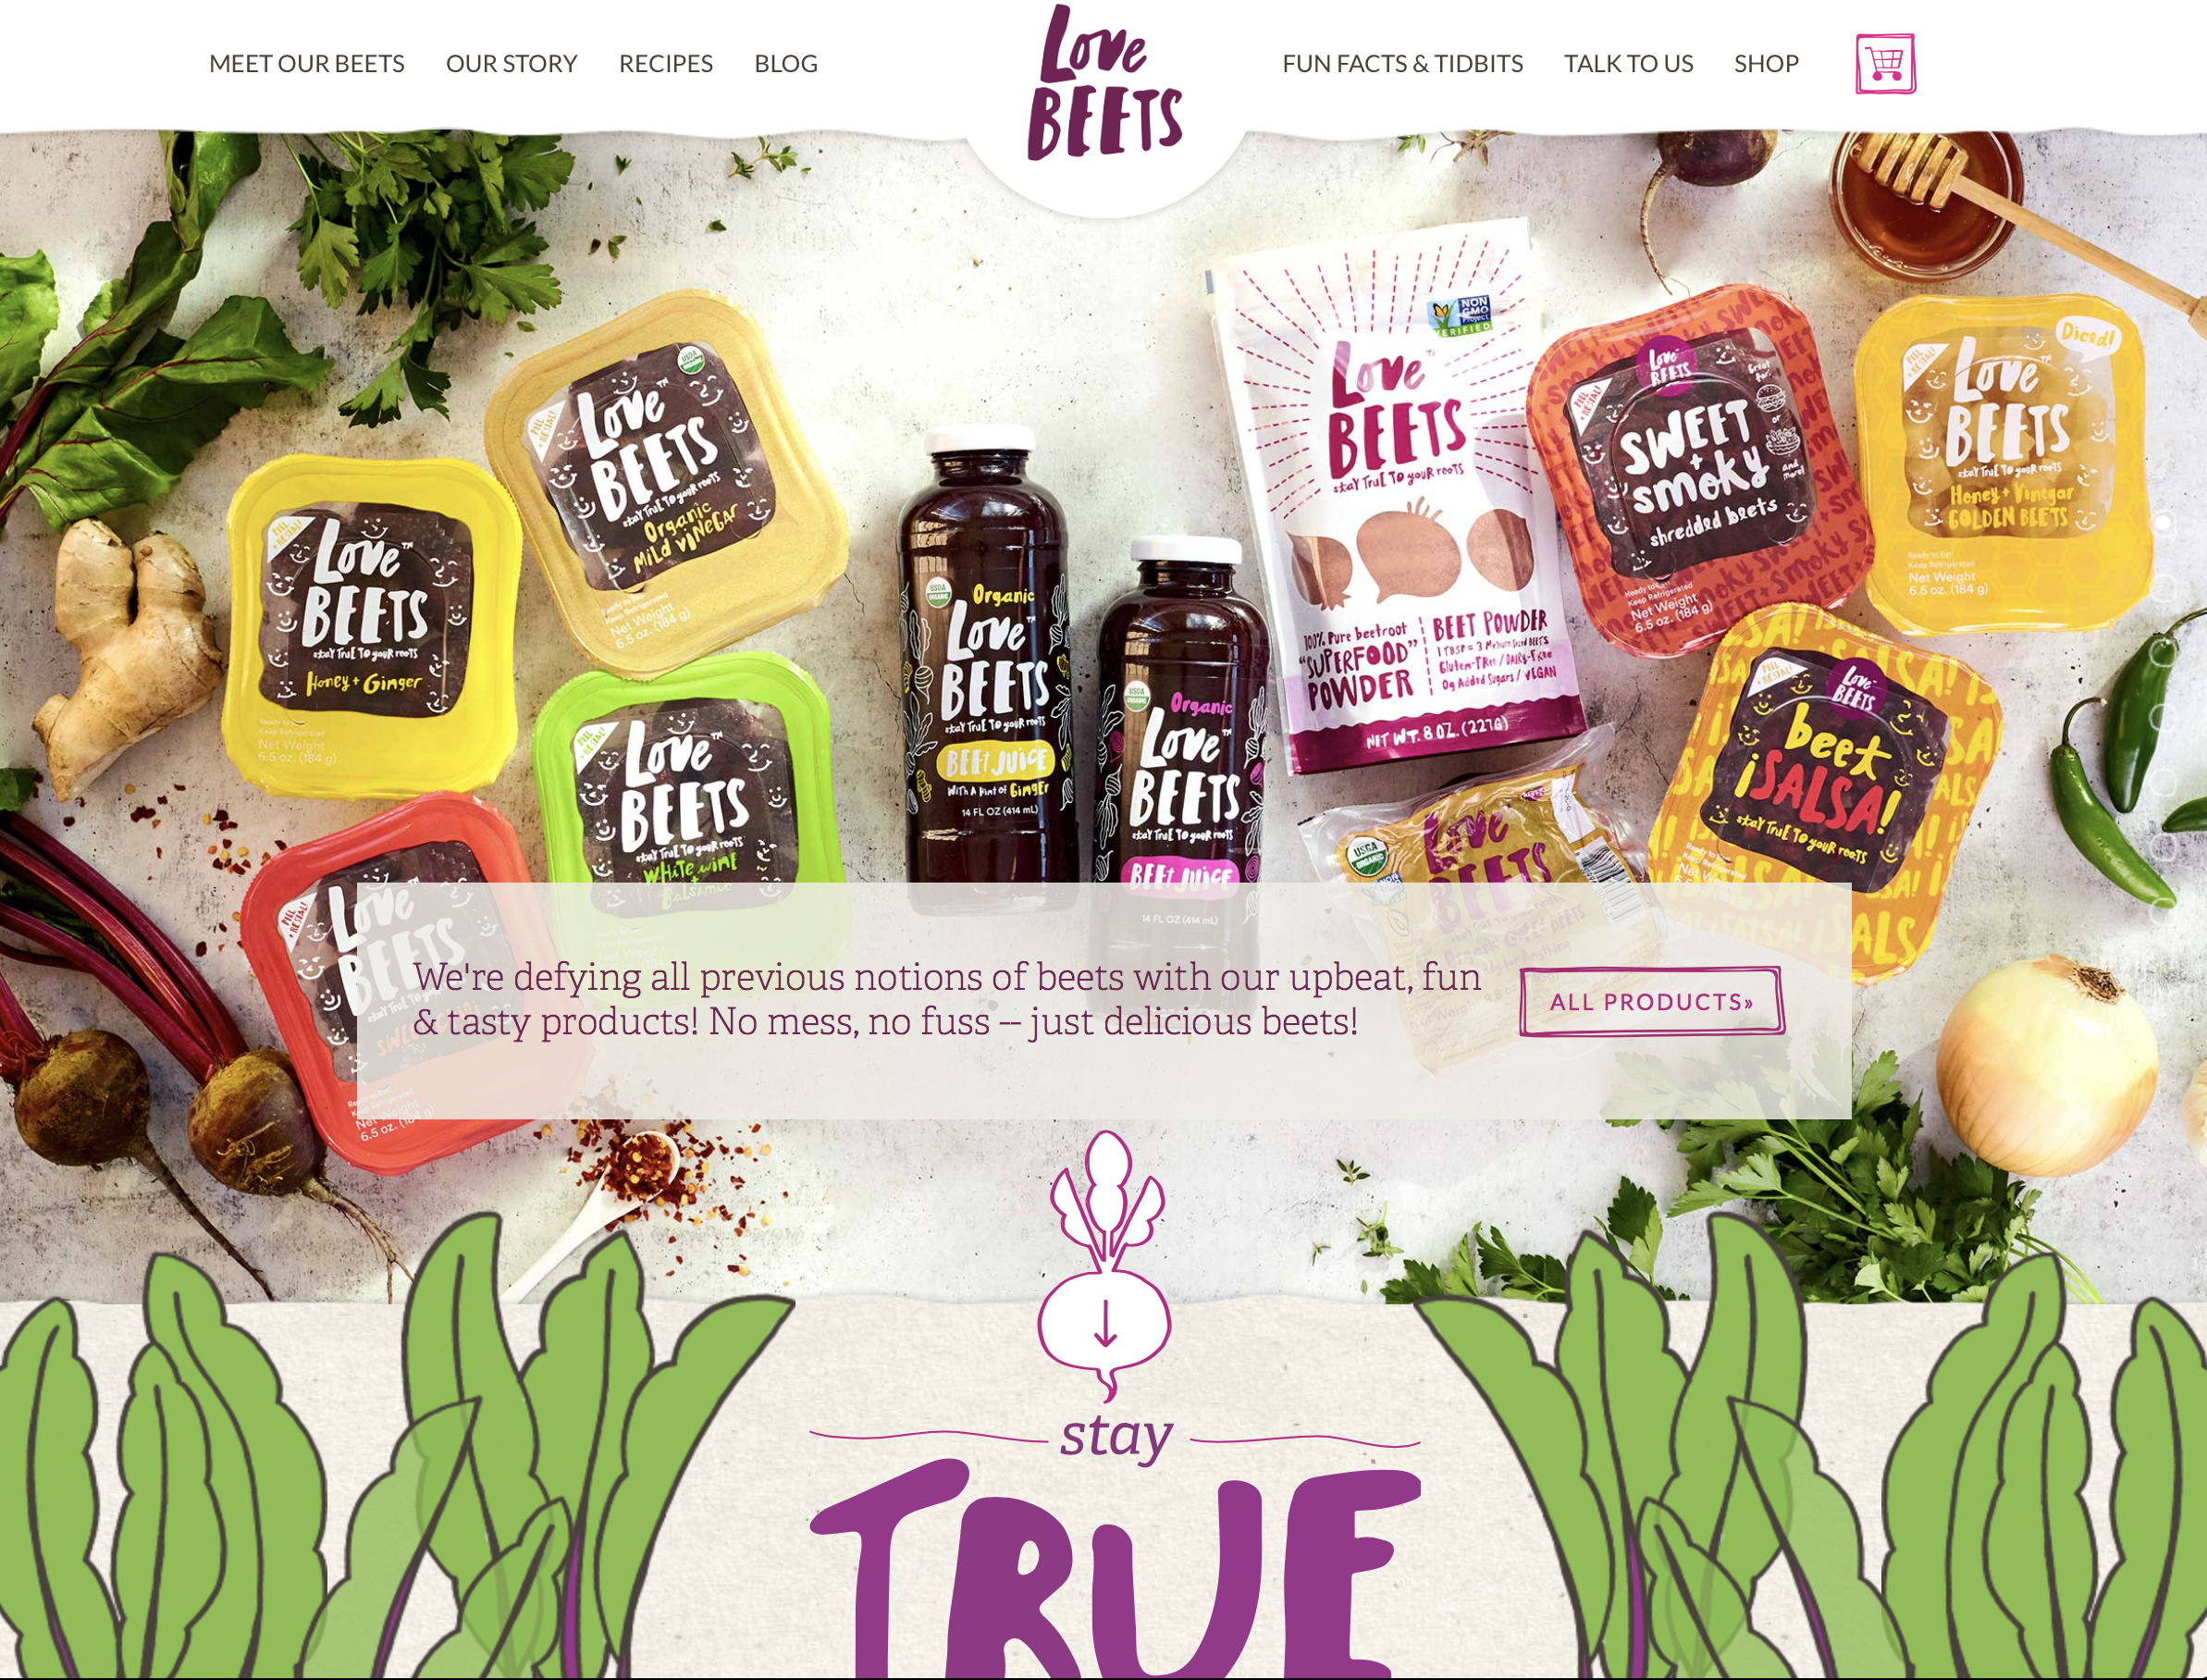 LOVE BEETS PRODUCT LINE —IMAGES SHOT FOR SOCIAL MEDIA CONTENT + LOVE BEETS WEBSITE